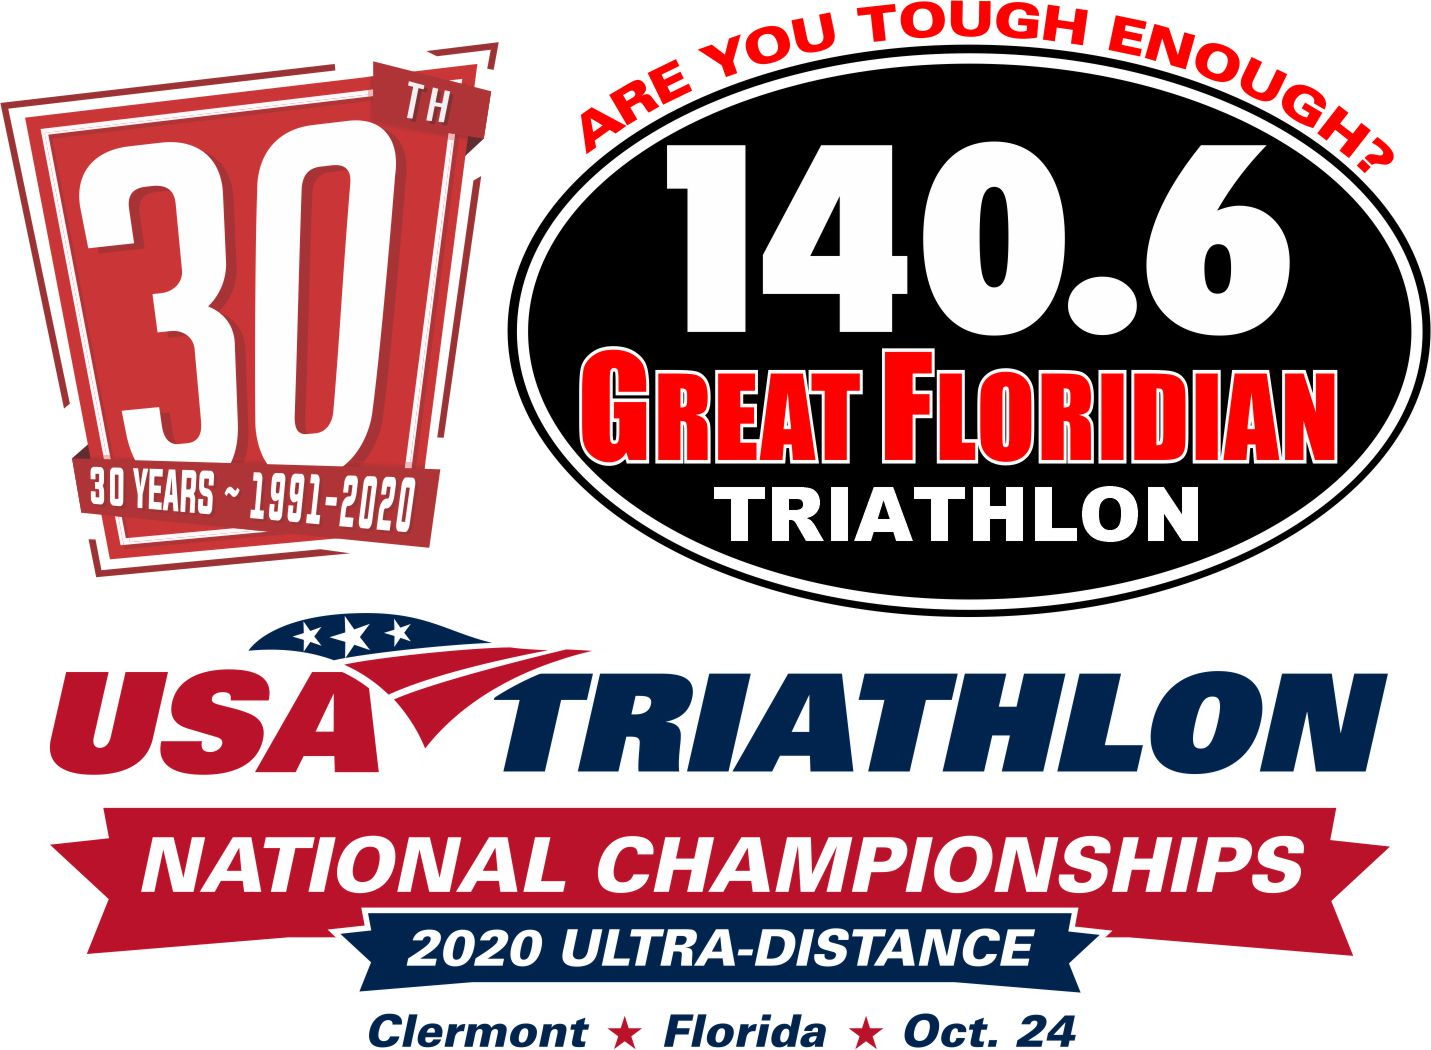 Event logo for Great Floridian Triathlon and USA Triathlon Ultra Distance National Championship